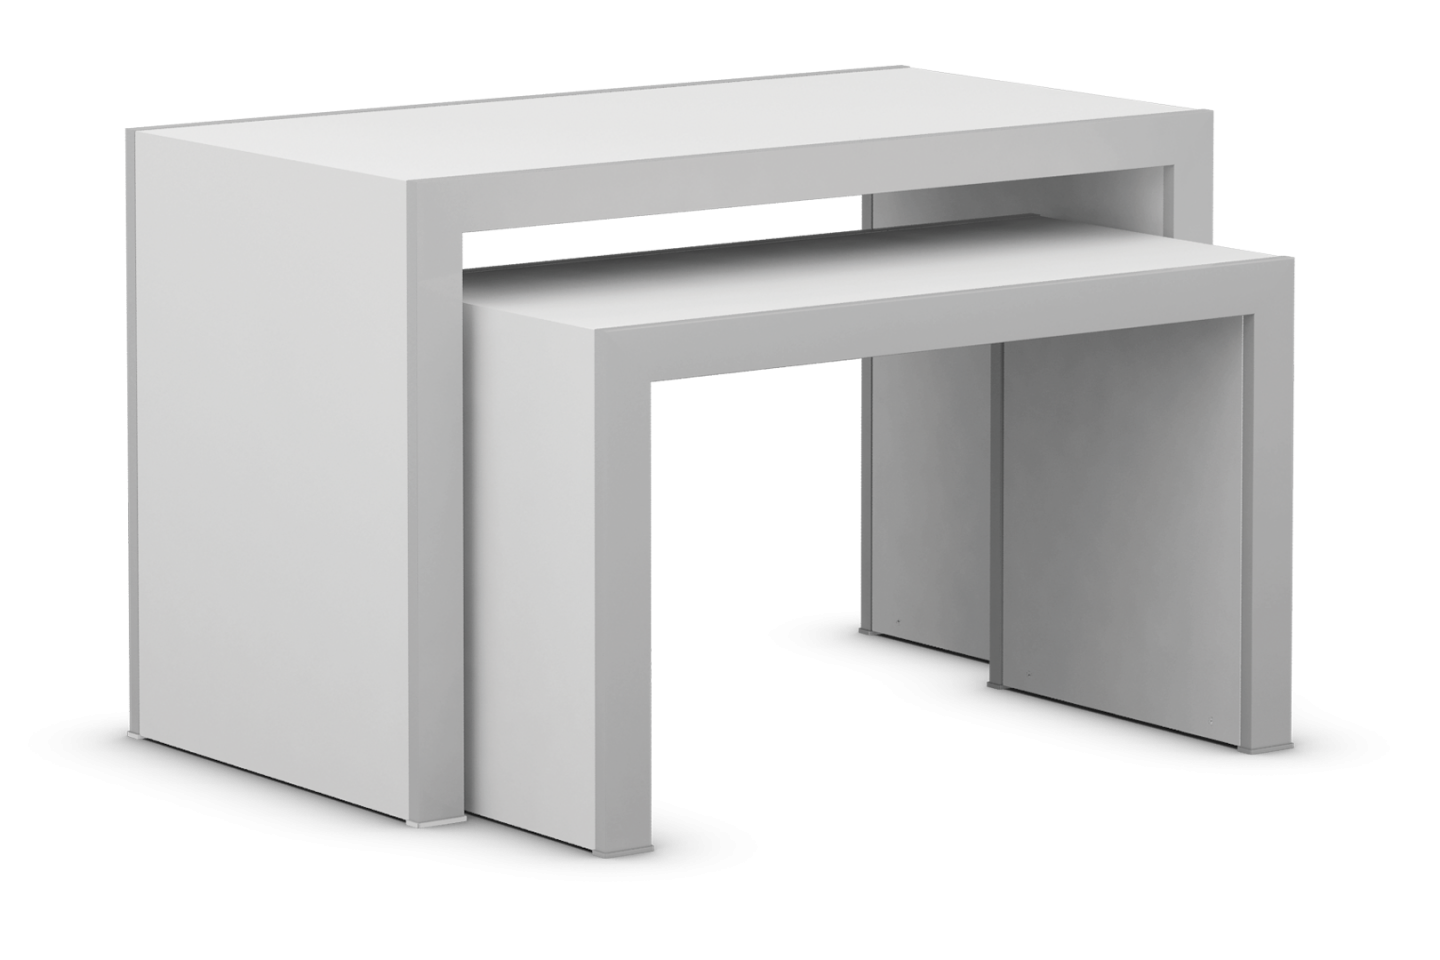 Edge Collection Metal Frame Table Set with Laminated Tops and Sides